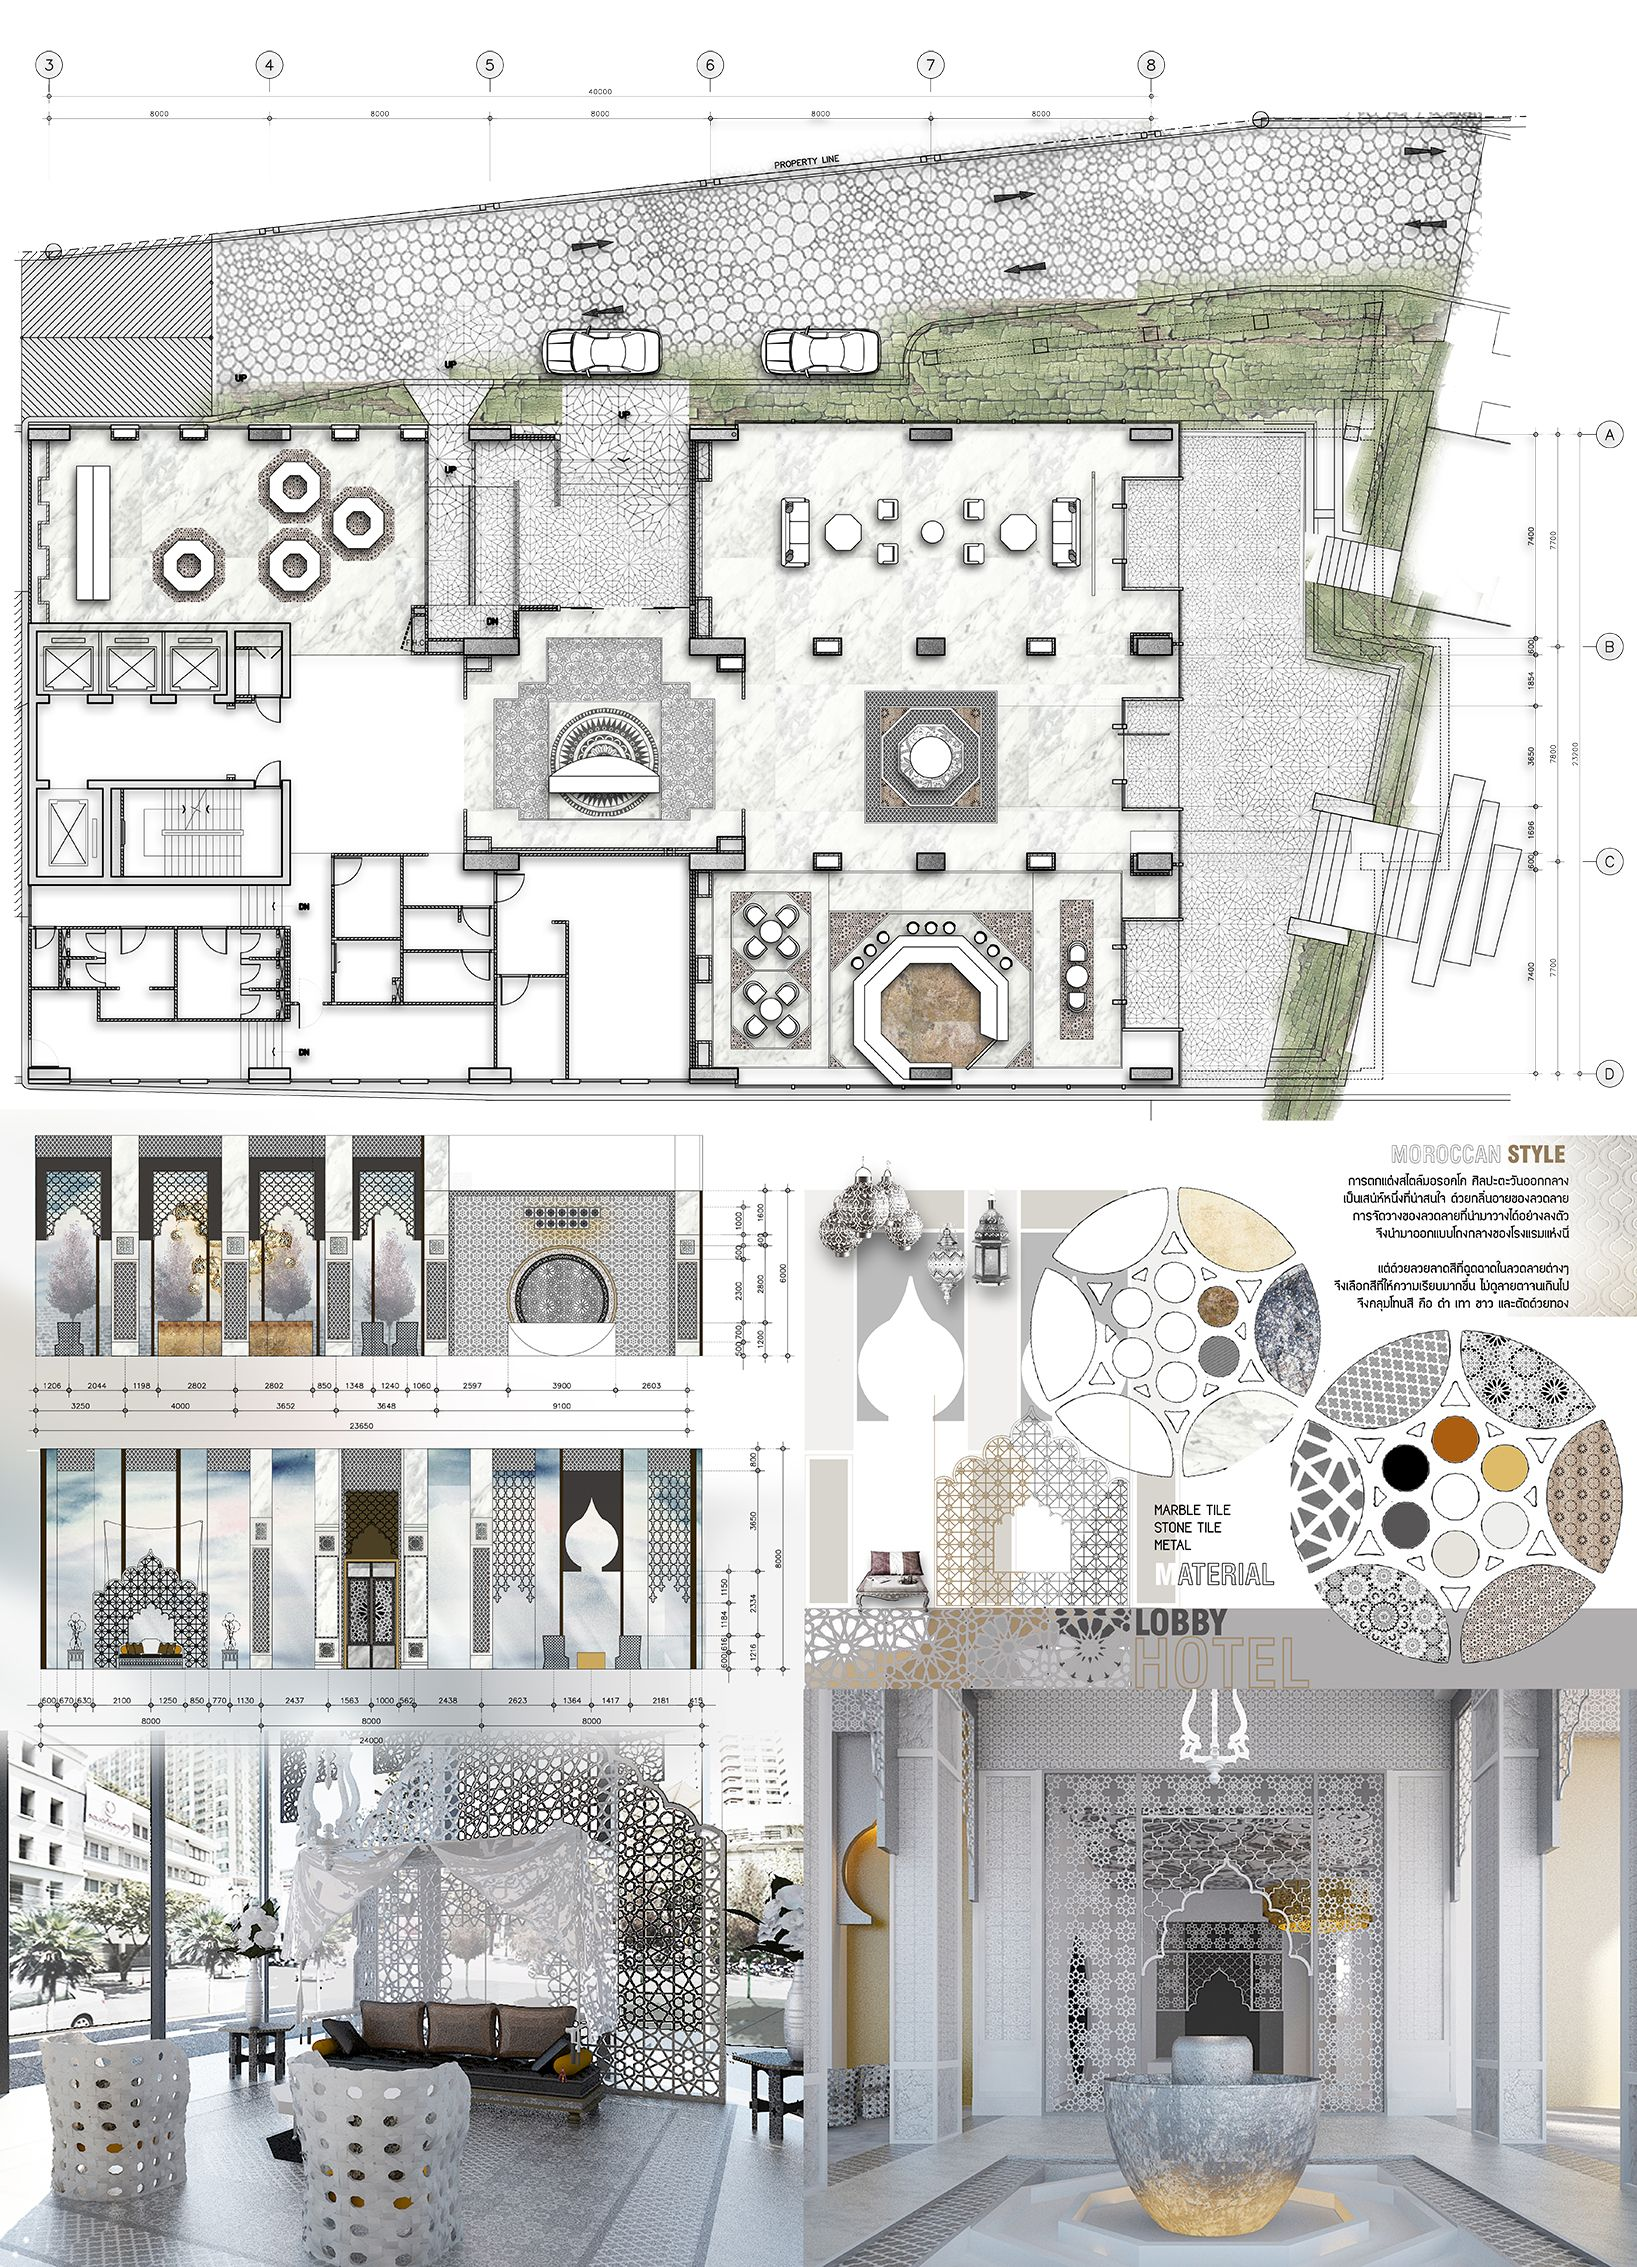 Lobby hotel in thonglor sketch design re project for Hotel plan design